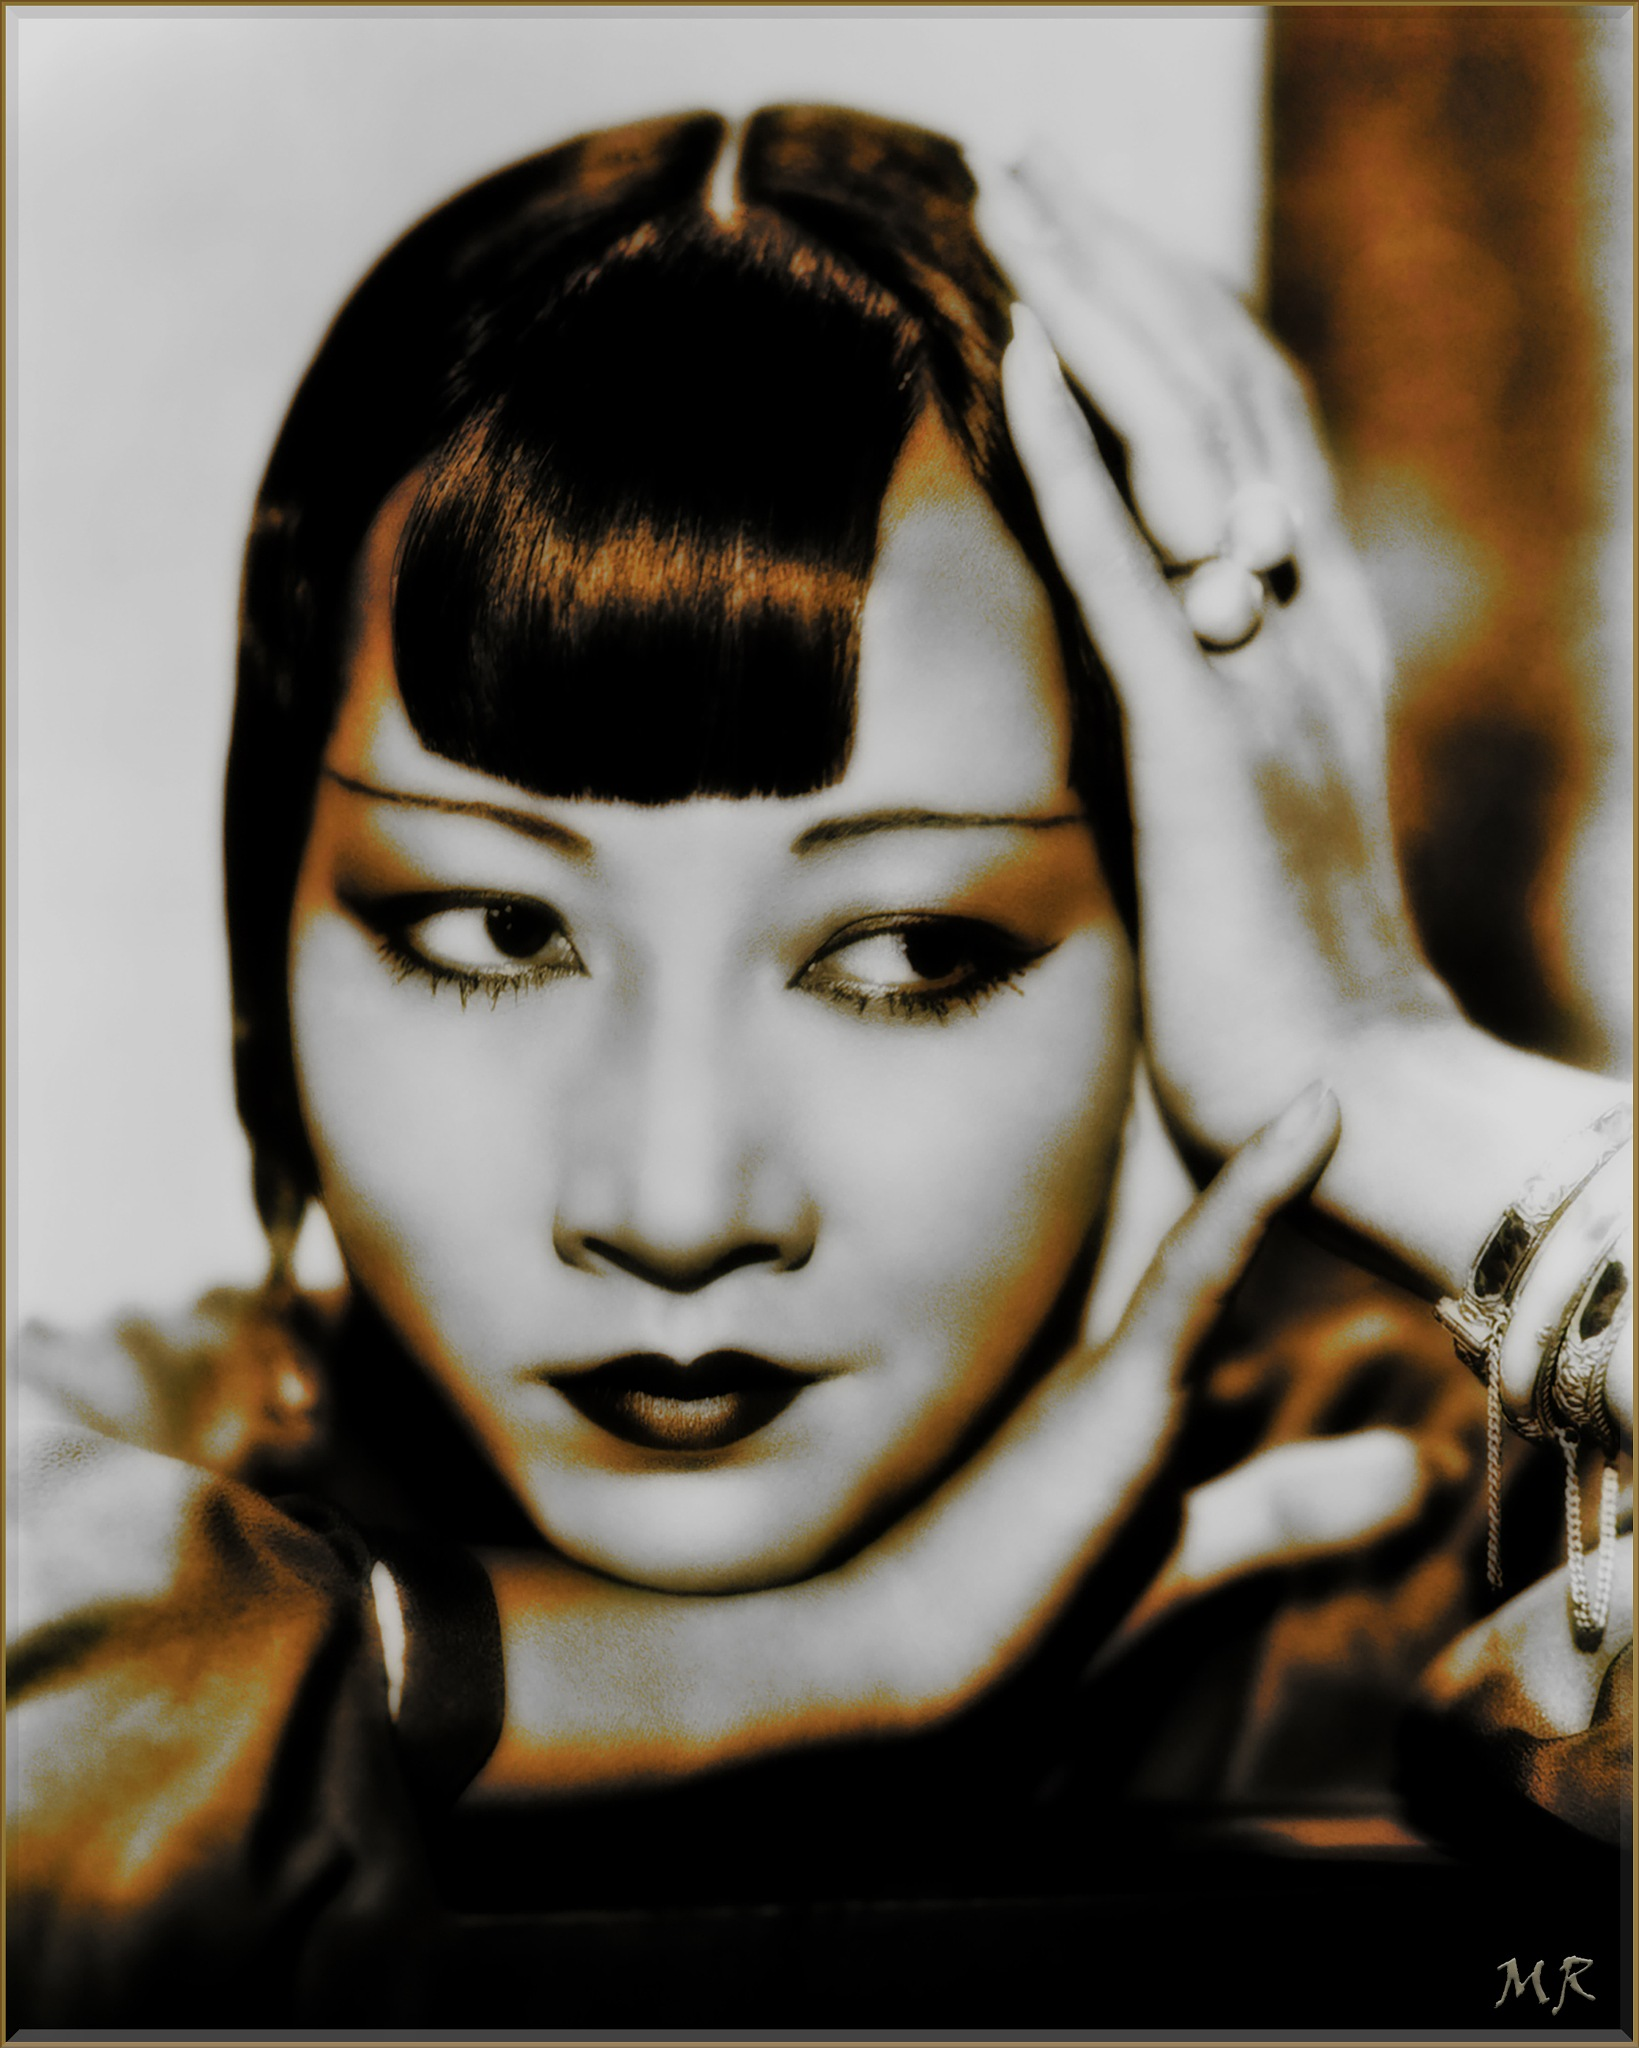 Anna May Wong,  by Mikael Rennerhorn